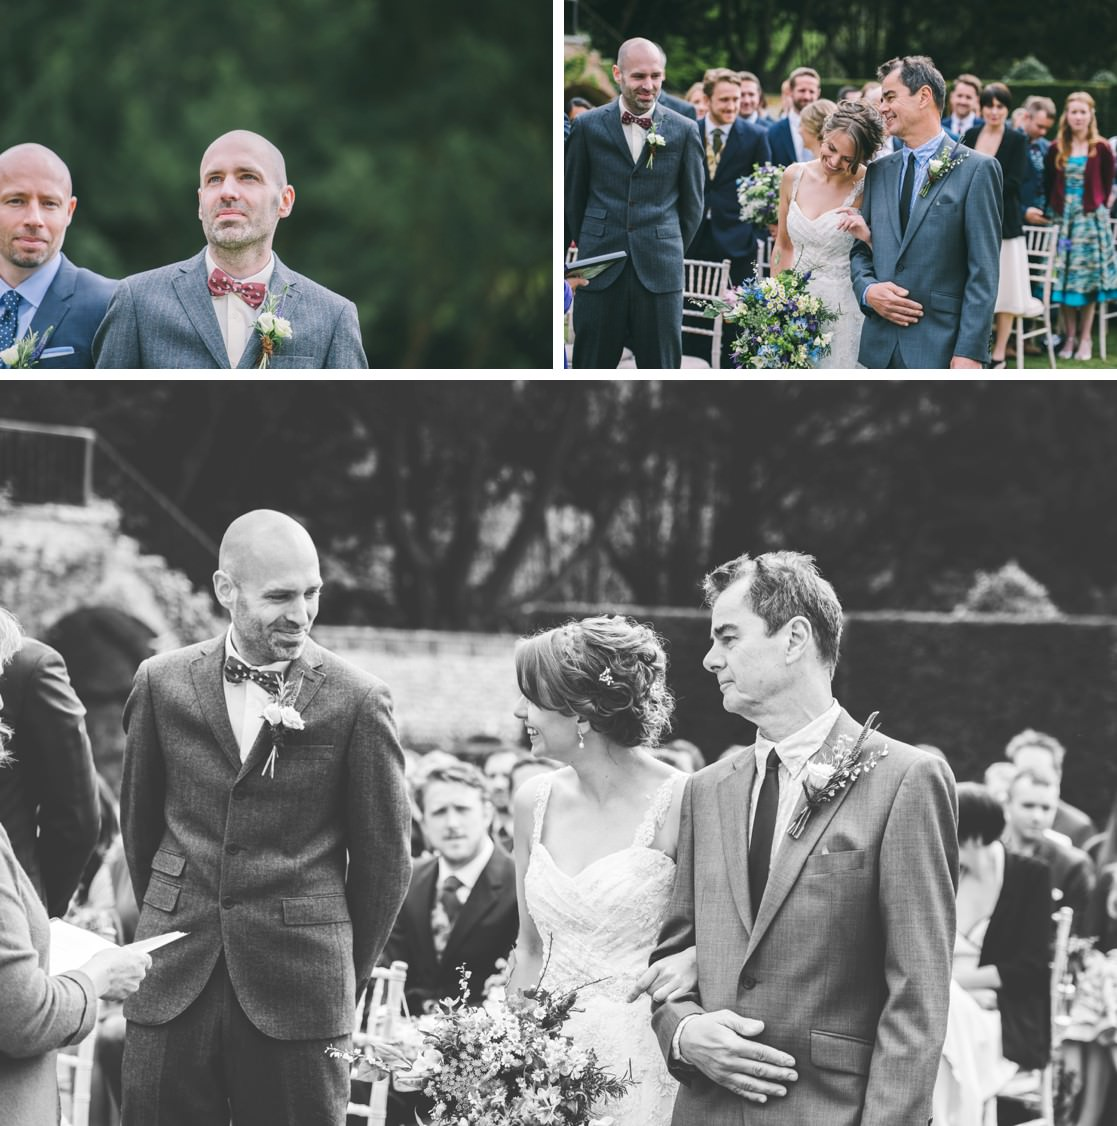 Paul-And-Hannah-Voewood-House-Wedding-By-Norfolk-And-Suffolk-Wedding-Photographer-James-Powell-Photography_0094.jpg